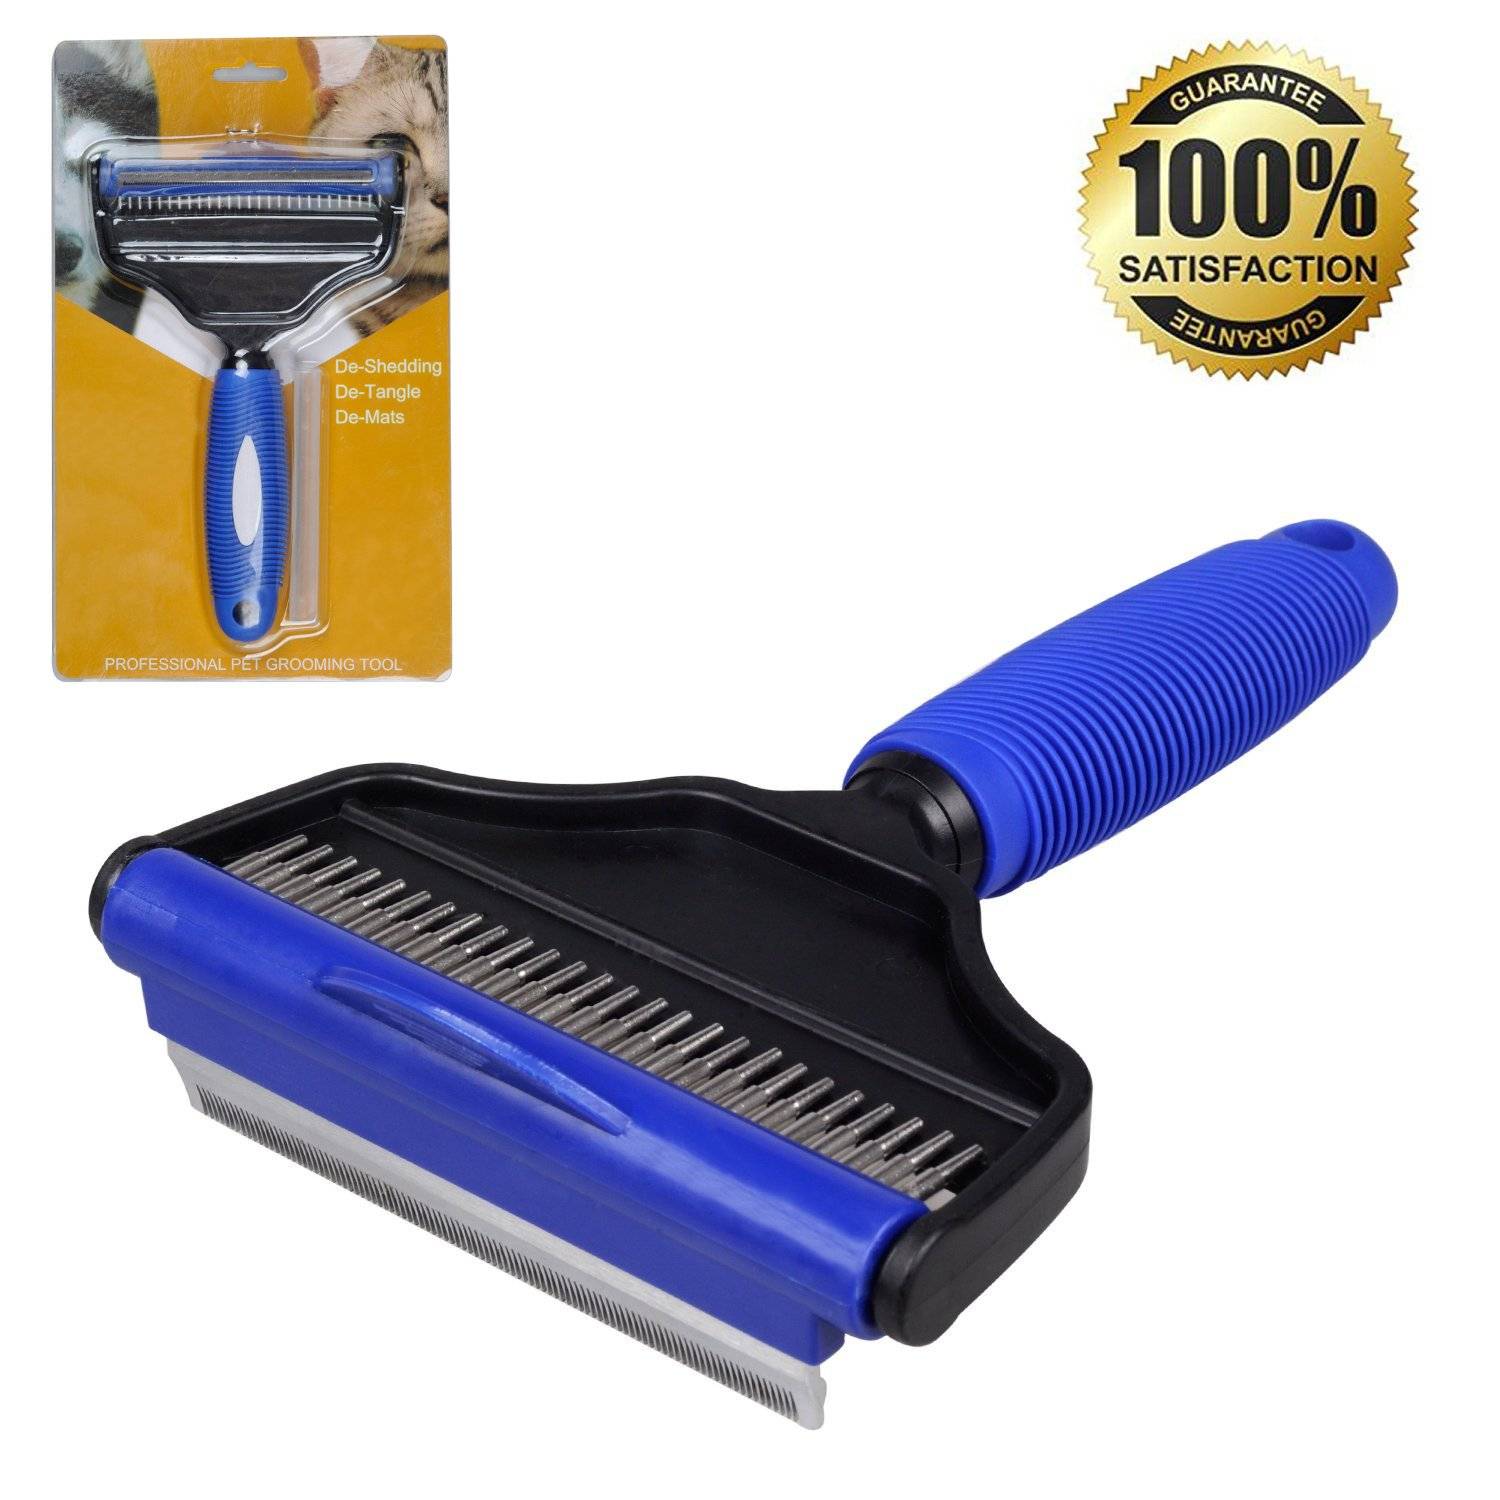 He& Ha Pet 2 in 1 Deshedding Tool - Dog and Cat Grooming Brush for Shedding and Undercoat Rake for Dogs with Long Hair